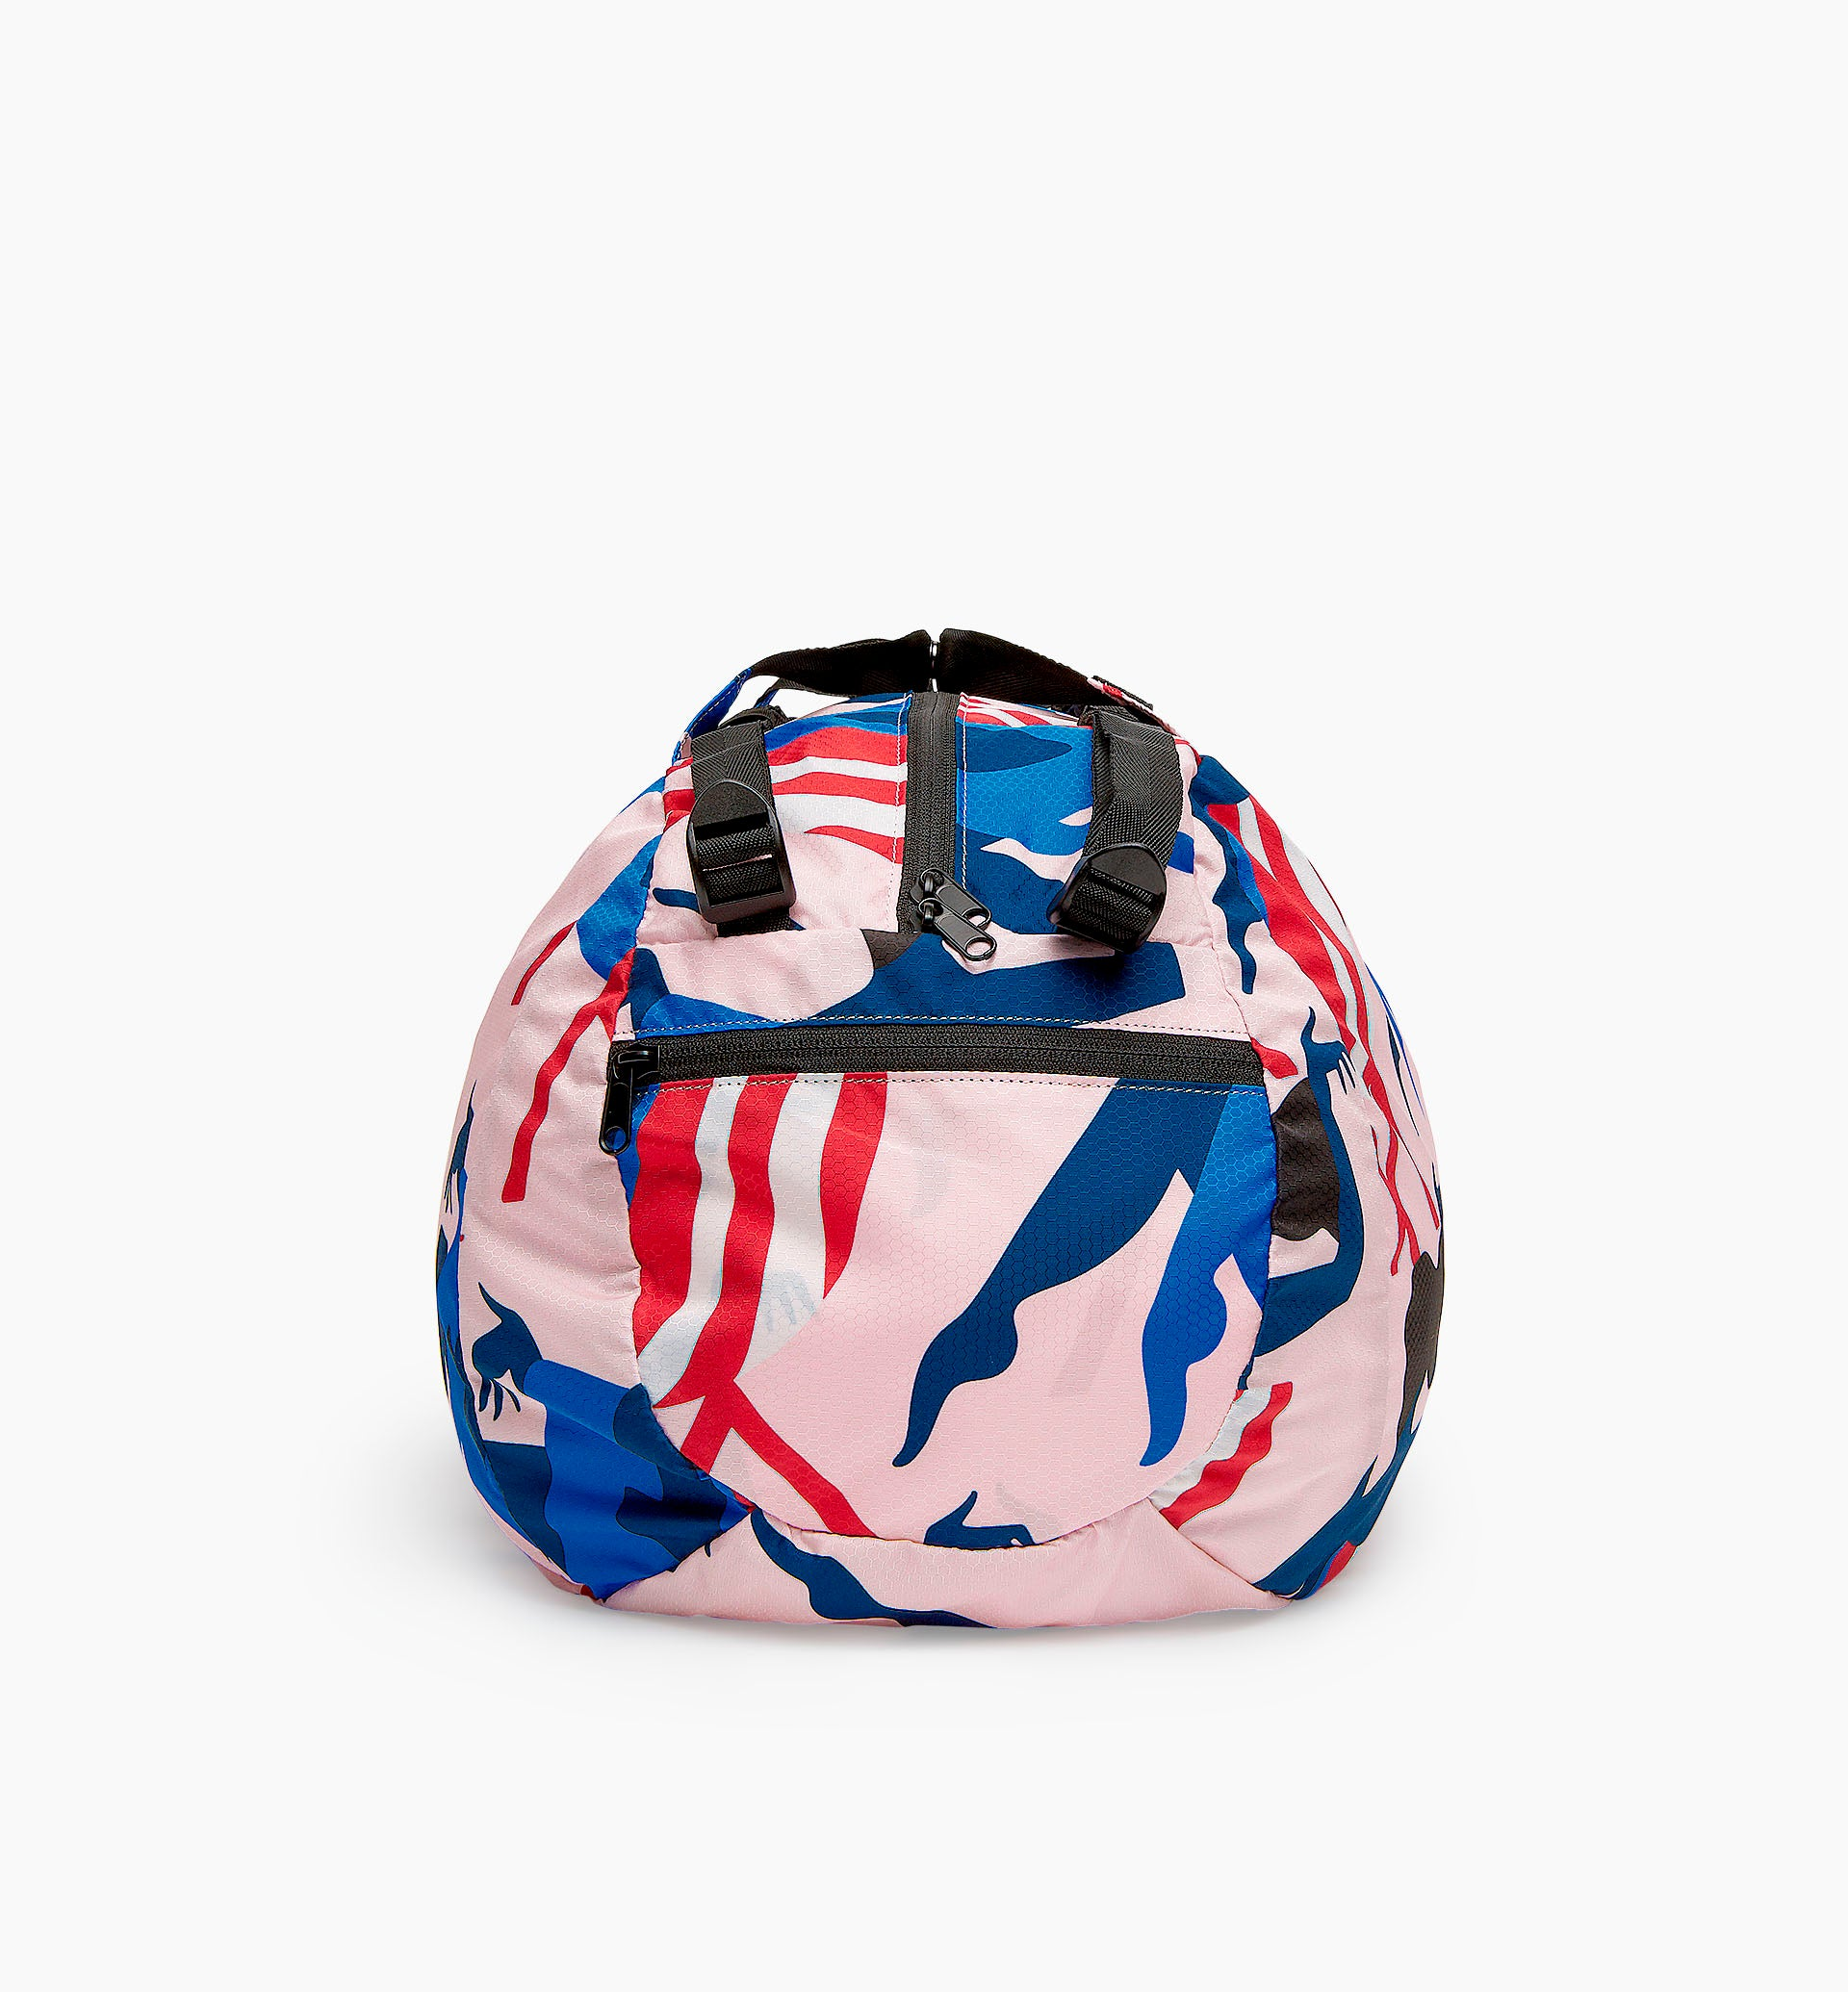 Parra - madame beach fly weight duffel